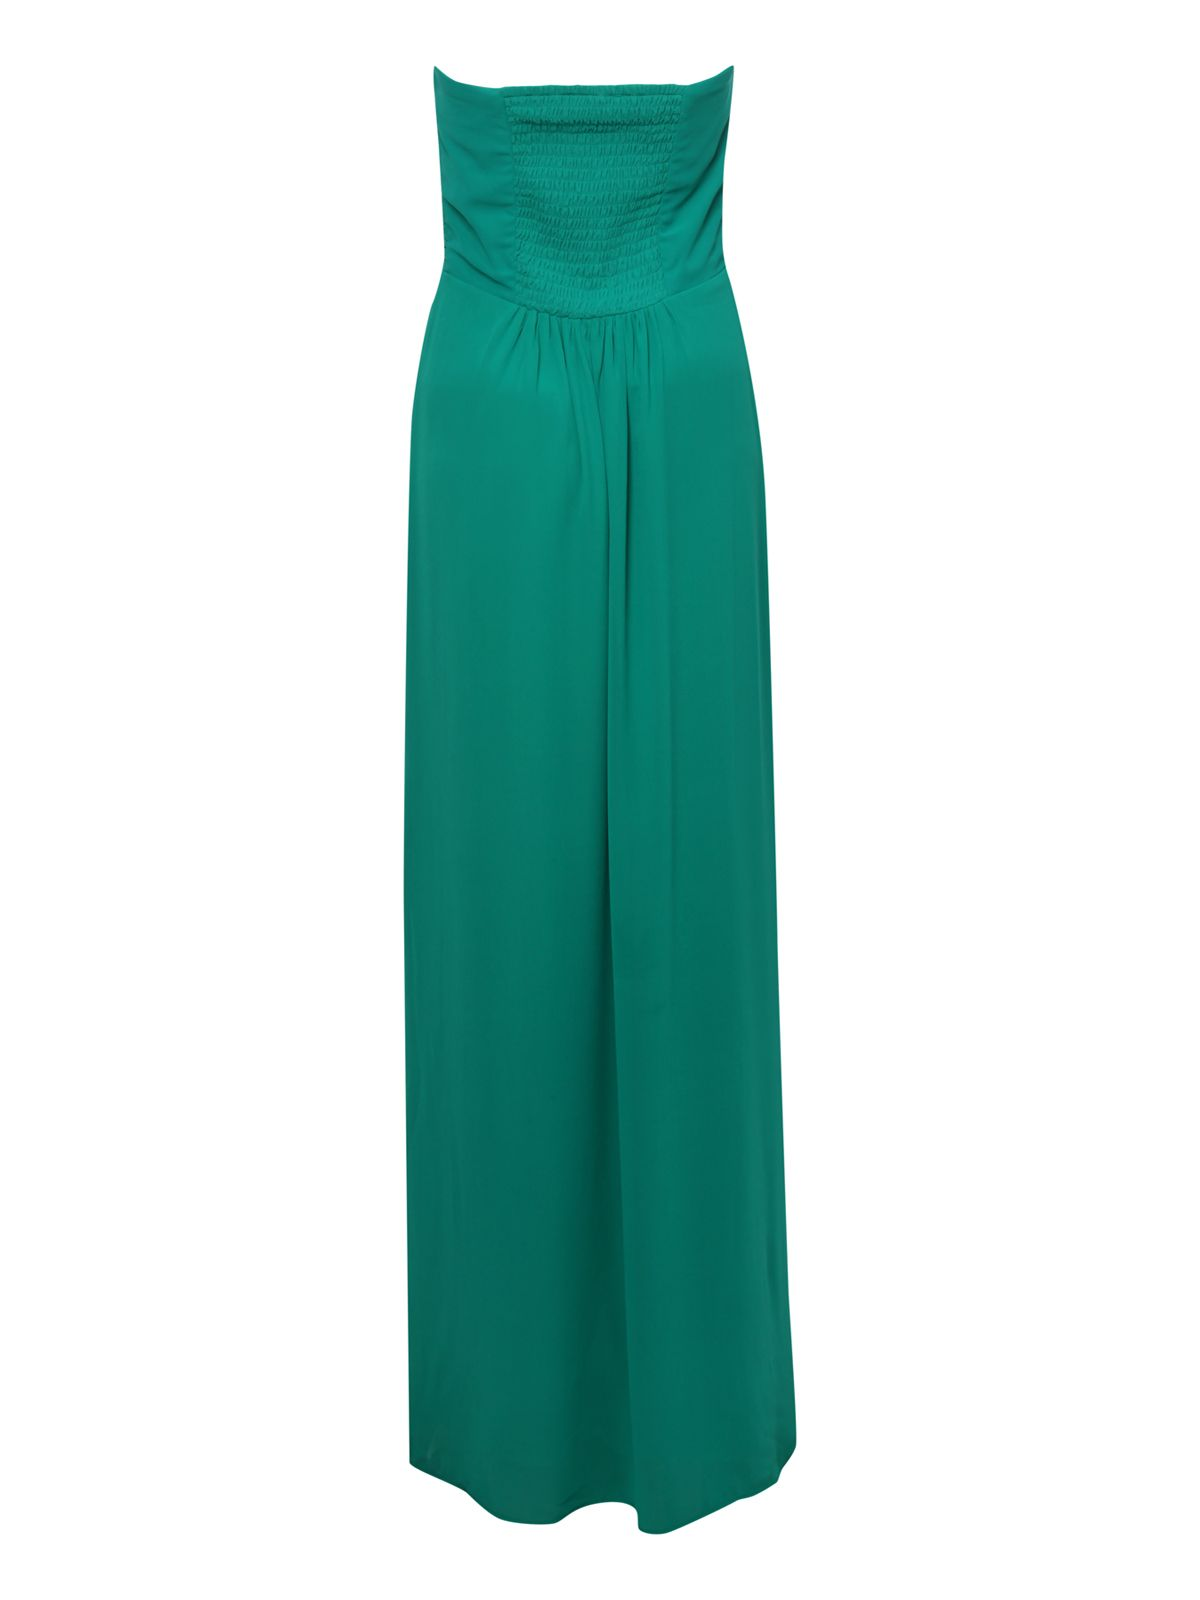 Sweetheart Pleat Bust Bandeau Maxi Dress